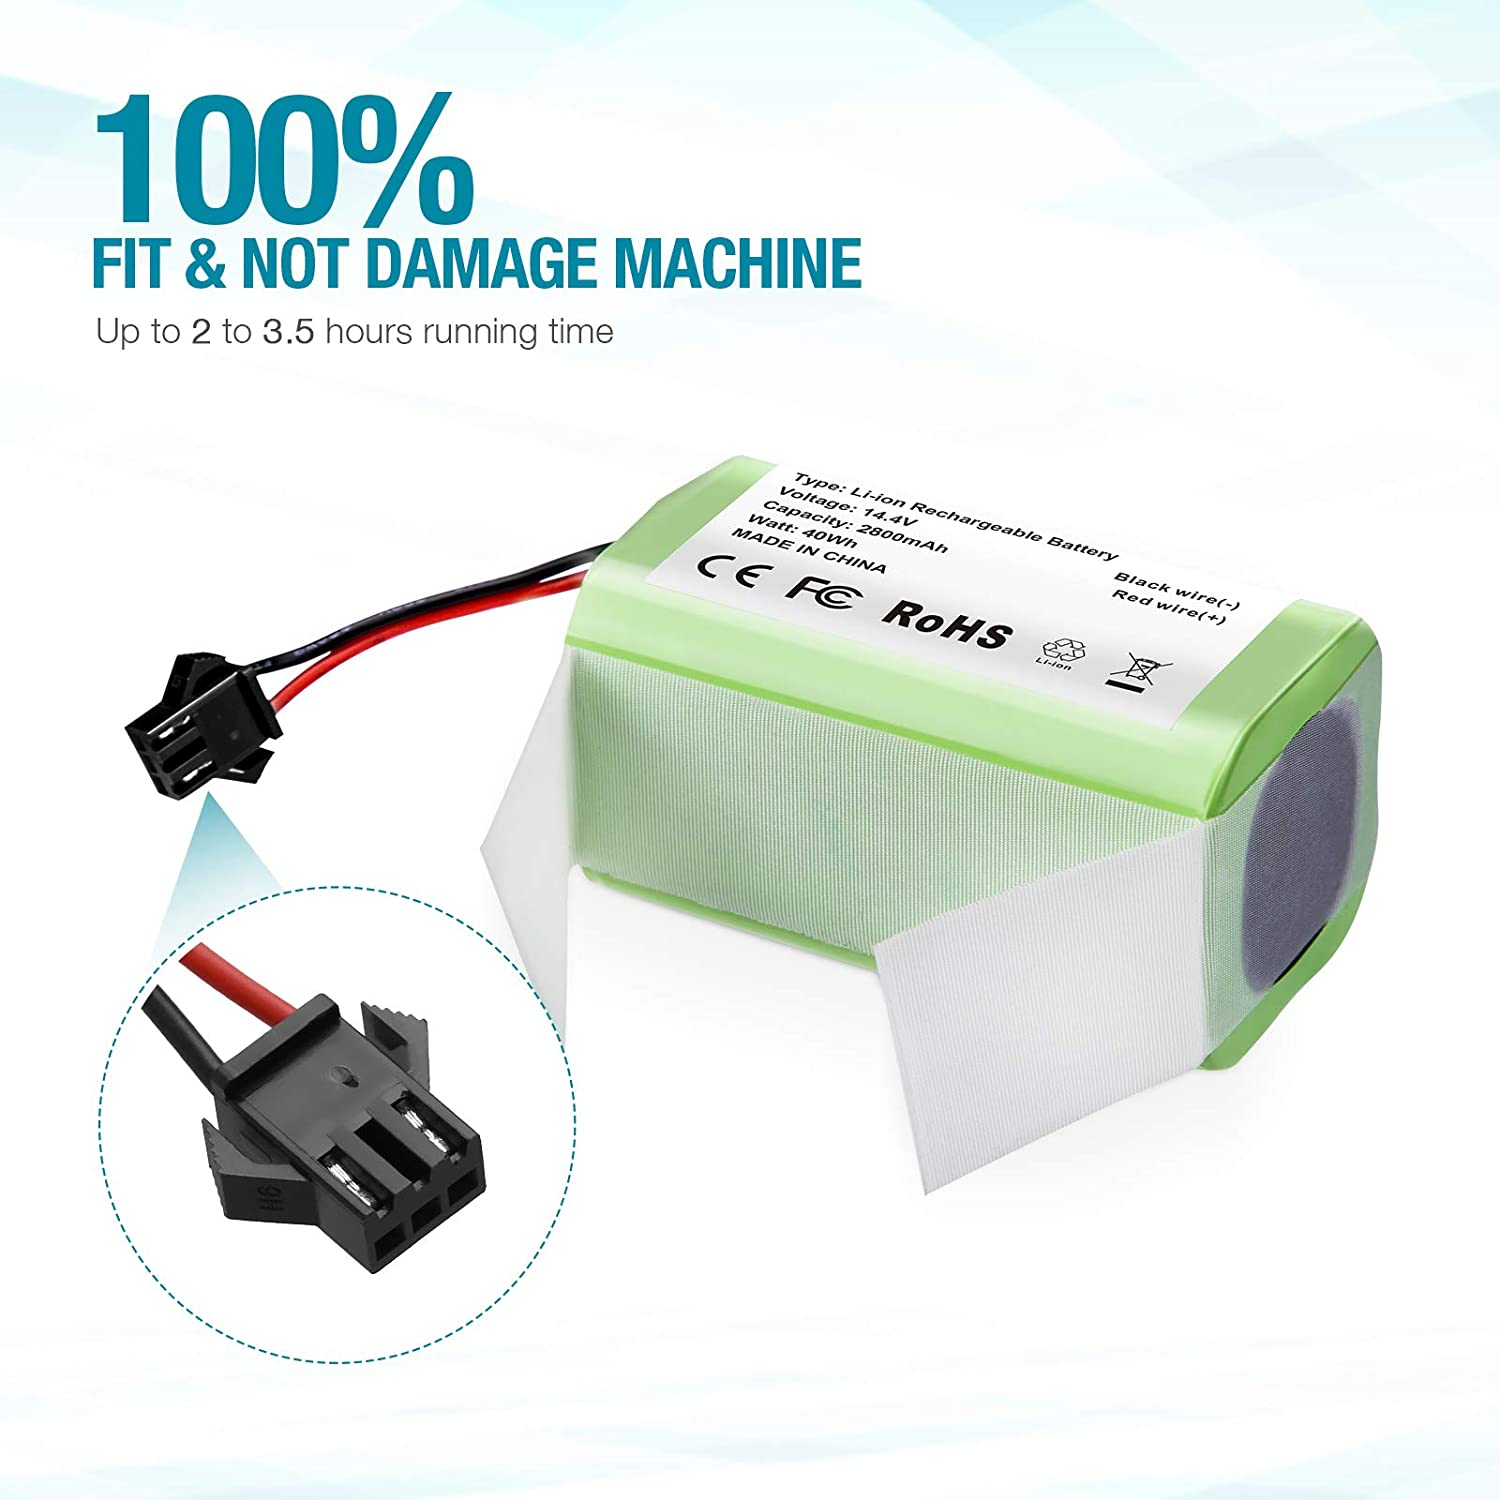 30C MAX SURTOP Upgraded 14.4v 2800mAh Li-ion RoboVac Replacement Battery Pack Higher Performance 25C 35C Accessory Compatible with RoboVac 11S 11S MAX Safer 15T 30 12 15C 15C MAX